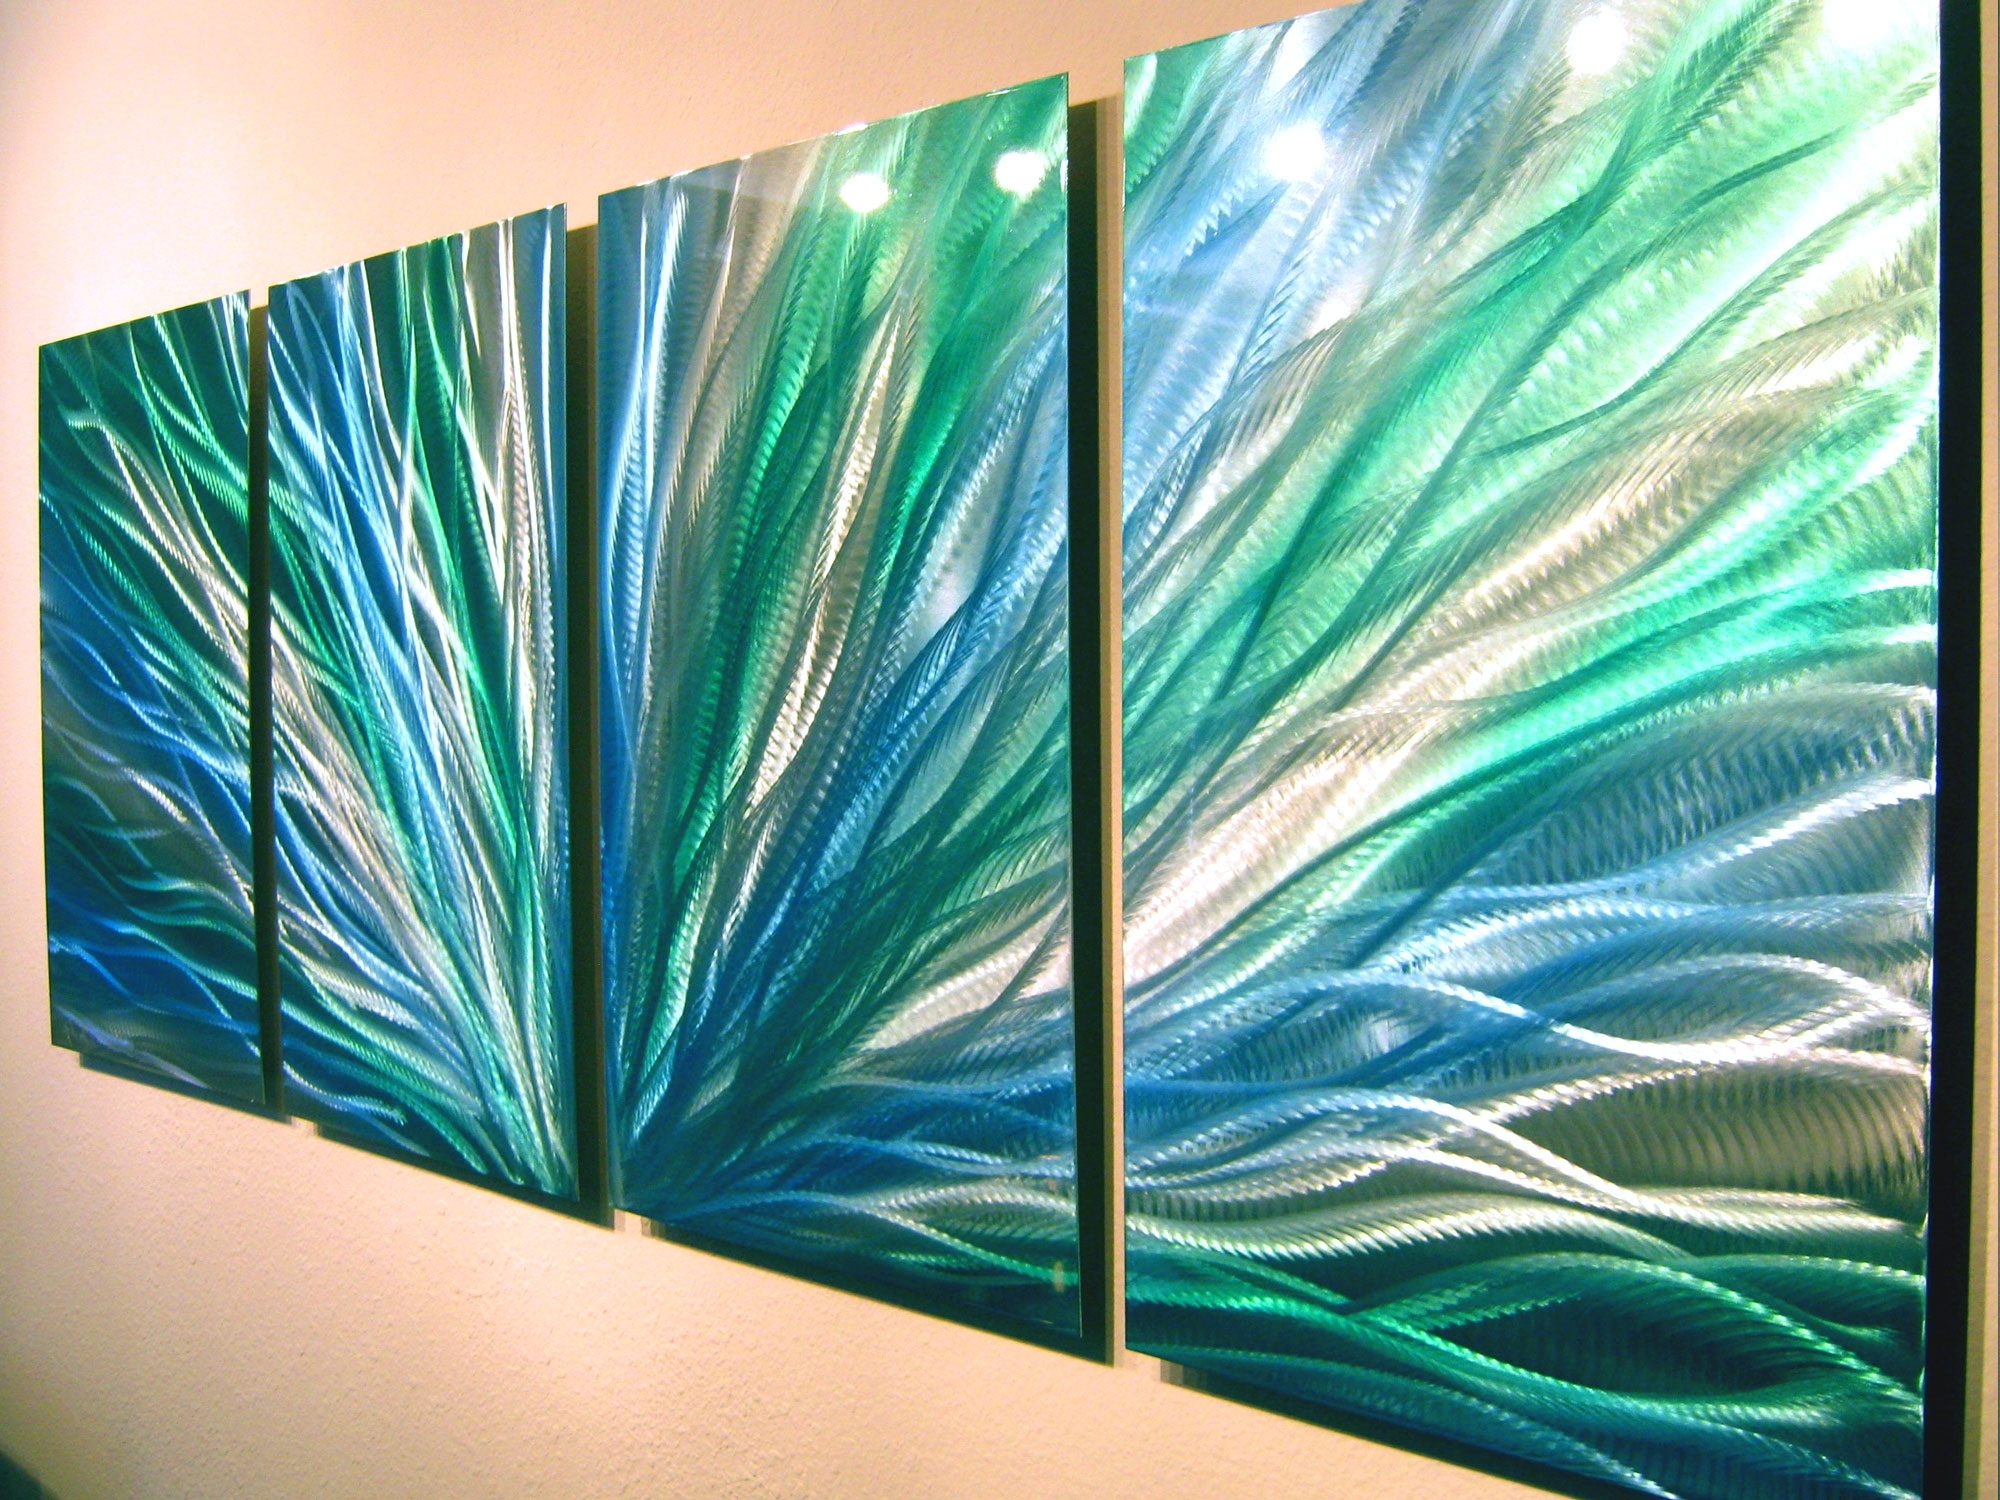 Latest Radiance Blue Green  Abstract Metal Wall Art Contemporary Modern With Regard To Blue Green Abstract Wall Art (Gallery 1 of 15)